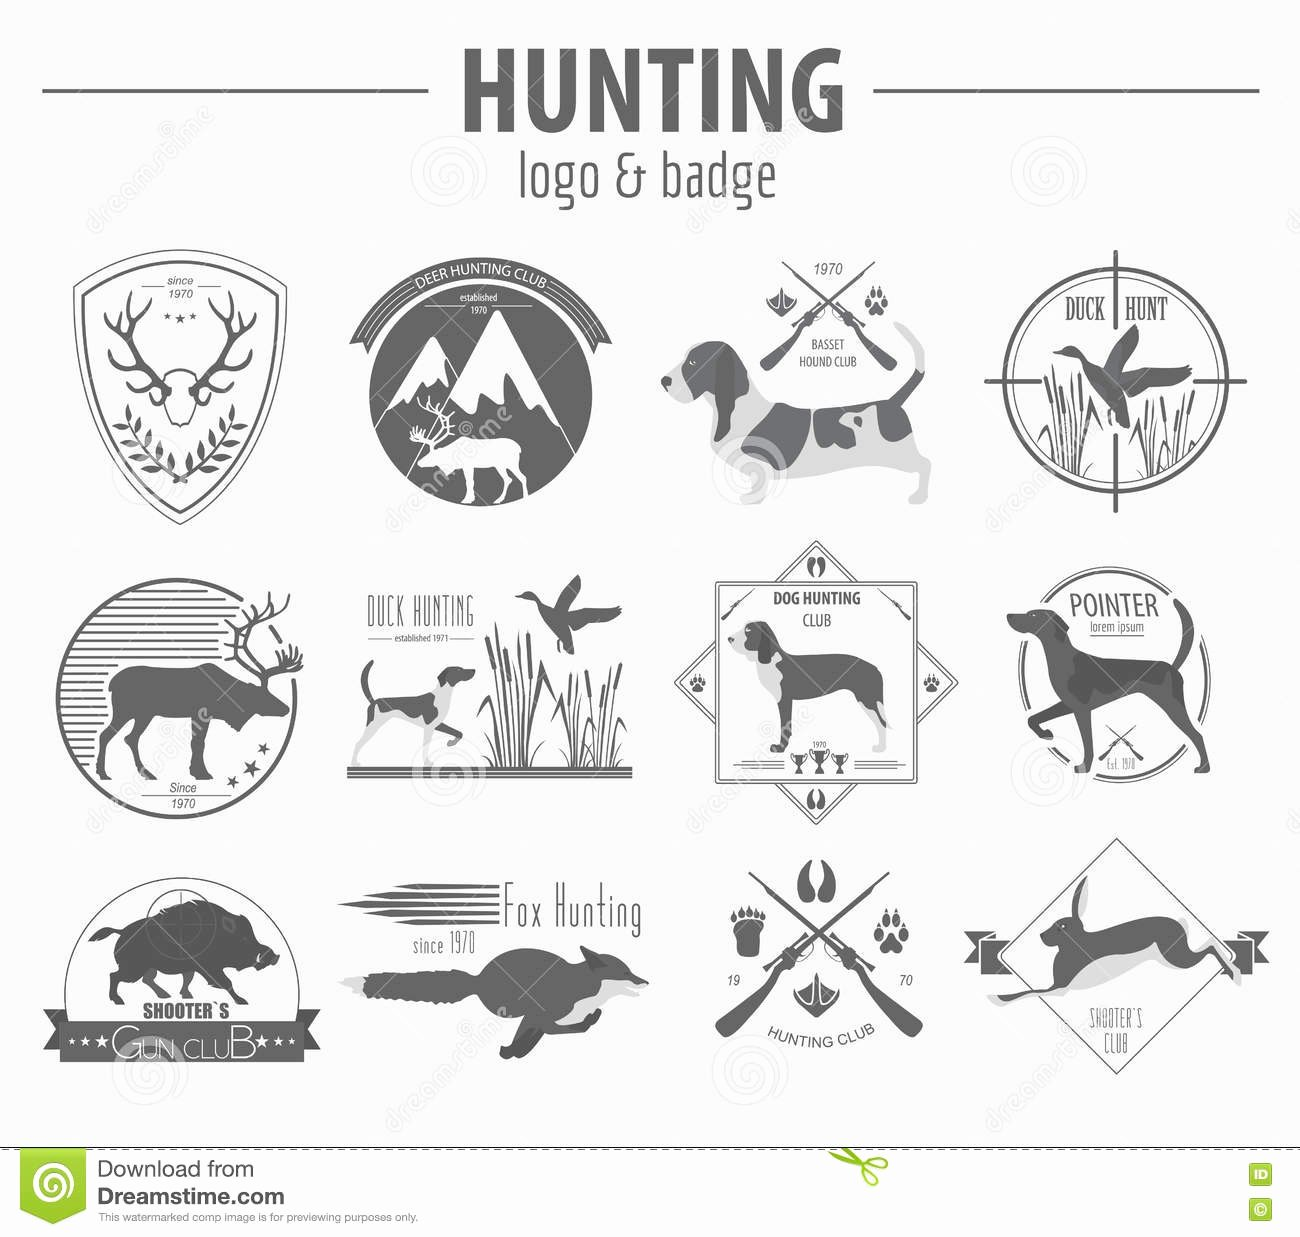 Hunting Logo Design Templates Unique Hunting Logo and Badge Template Dog Hunting Equipment Flat D Stock Vector Illustration Of